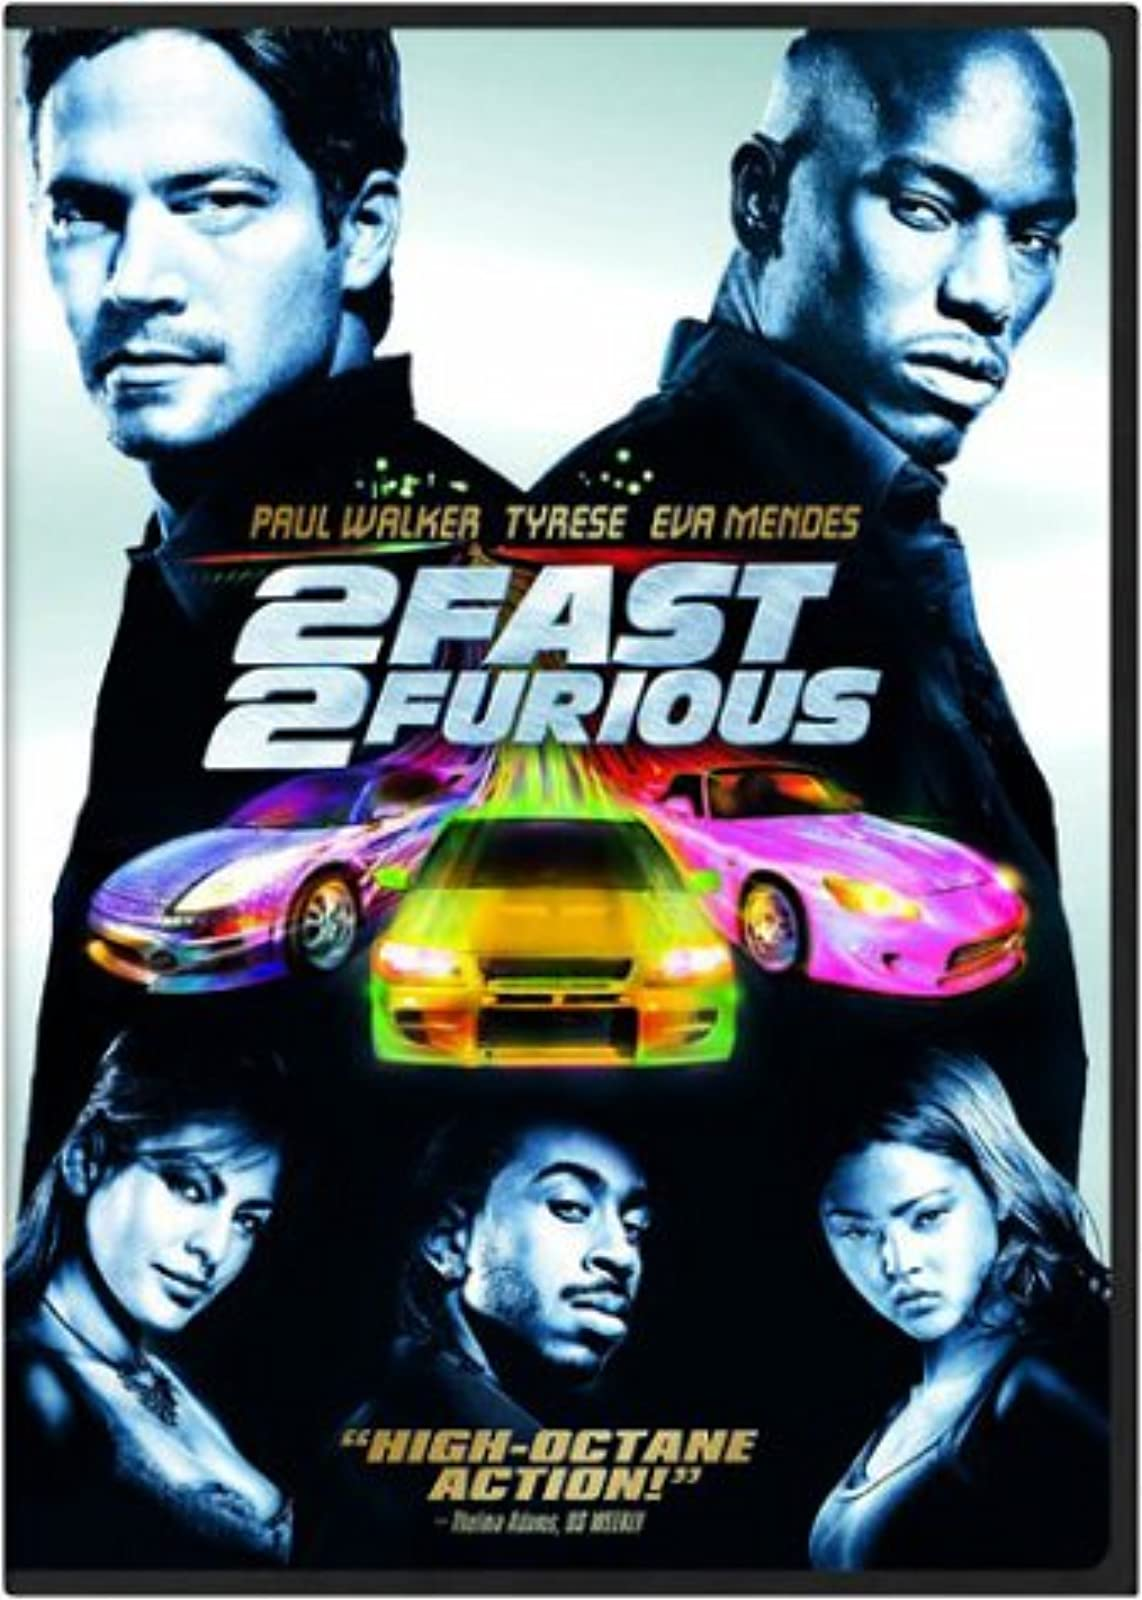 2 Fast 2 Furious Widescreen Edition On DVD With Paul Walker